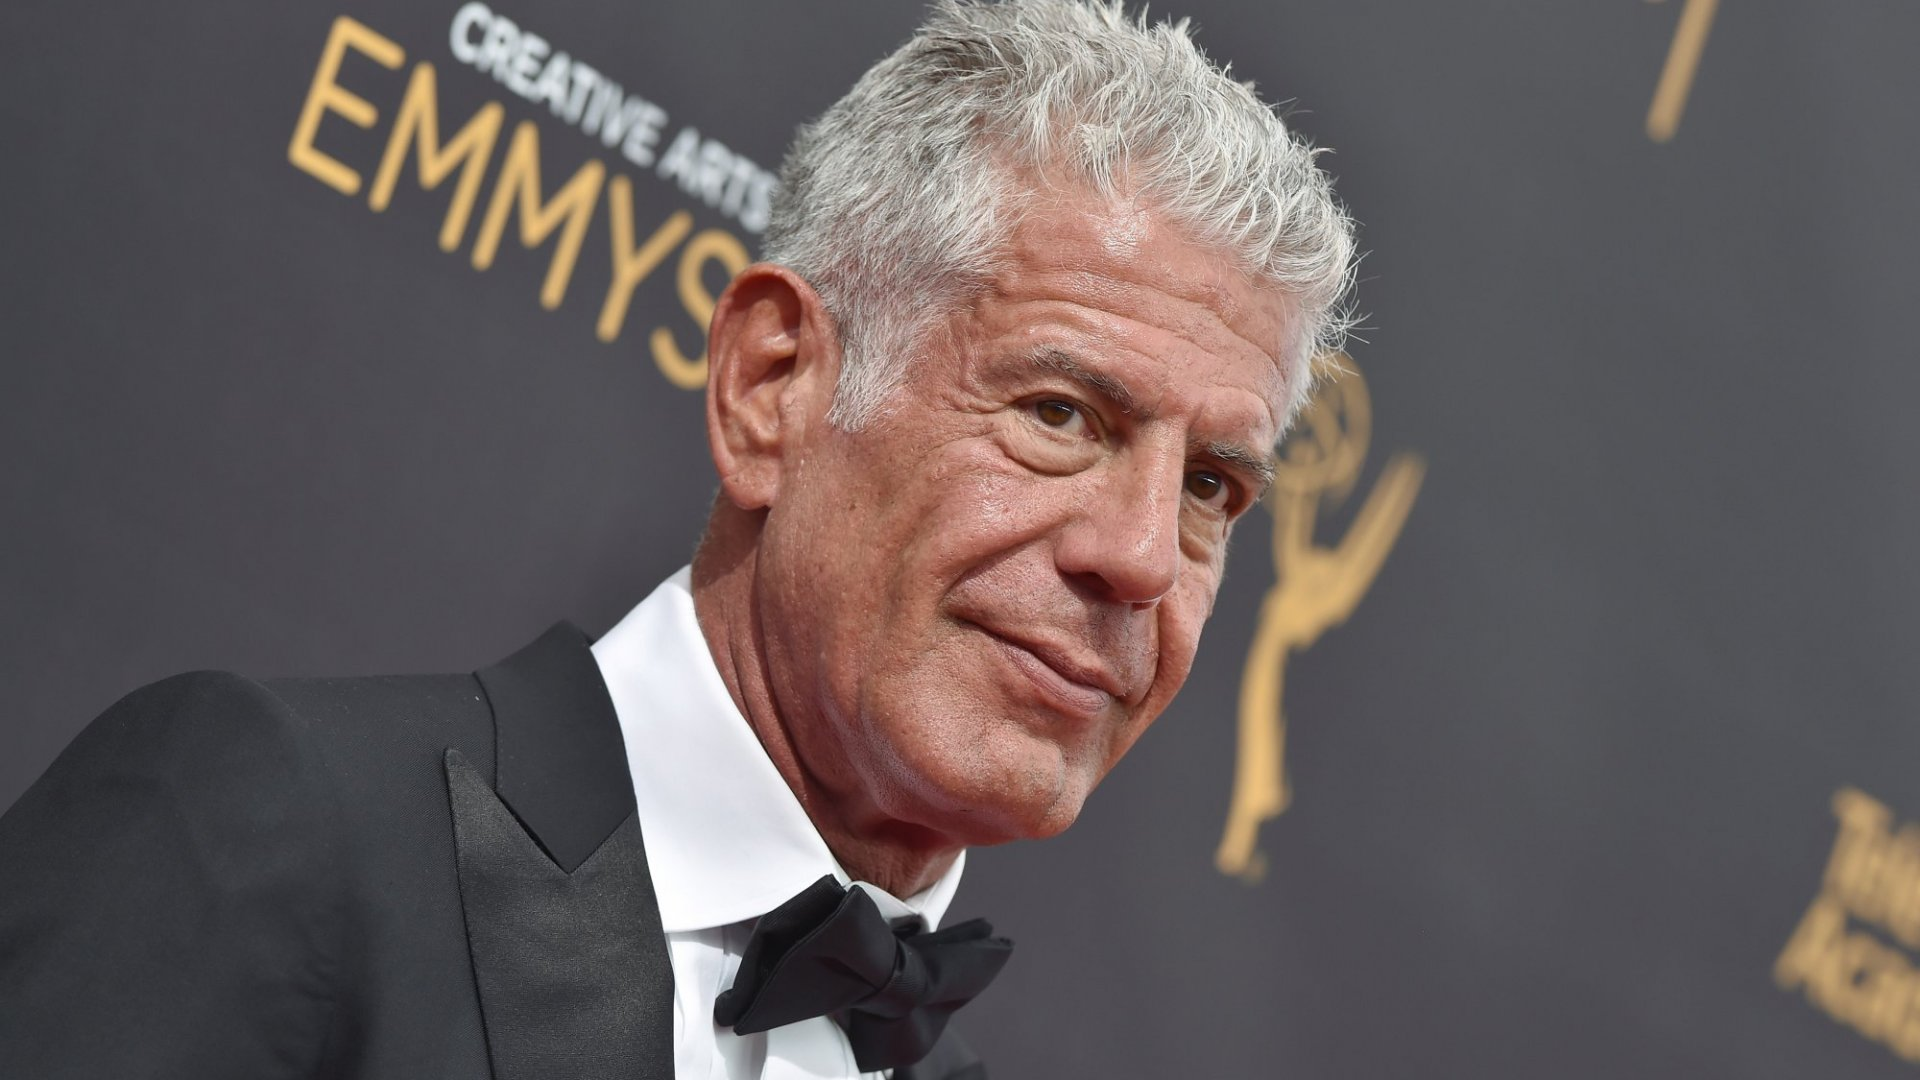 17 Anthony Bourdain Quotes on Food, Business, and Life That Will Inspire You